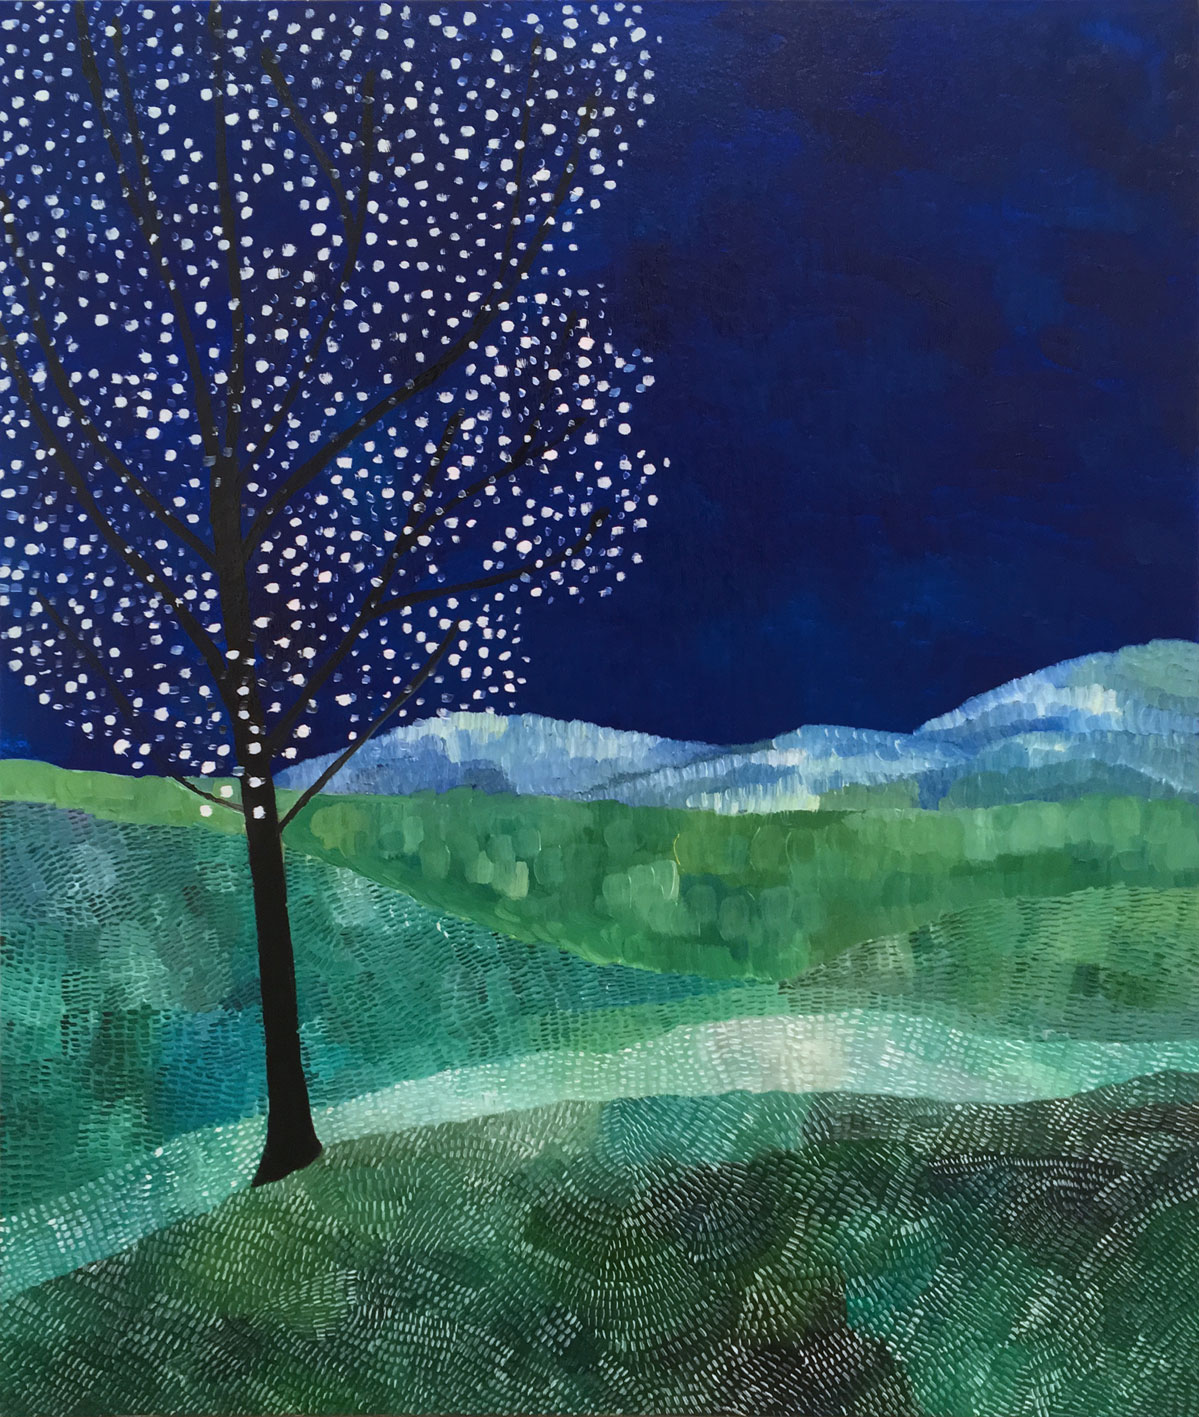 Sally-Ross-Night-Tree-2017-650x550cm